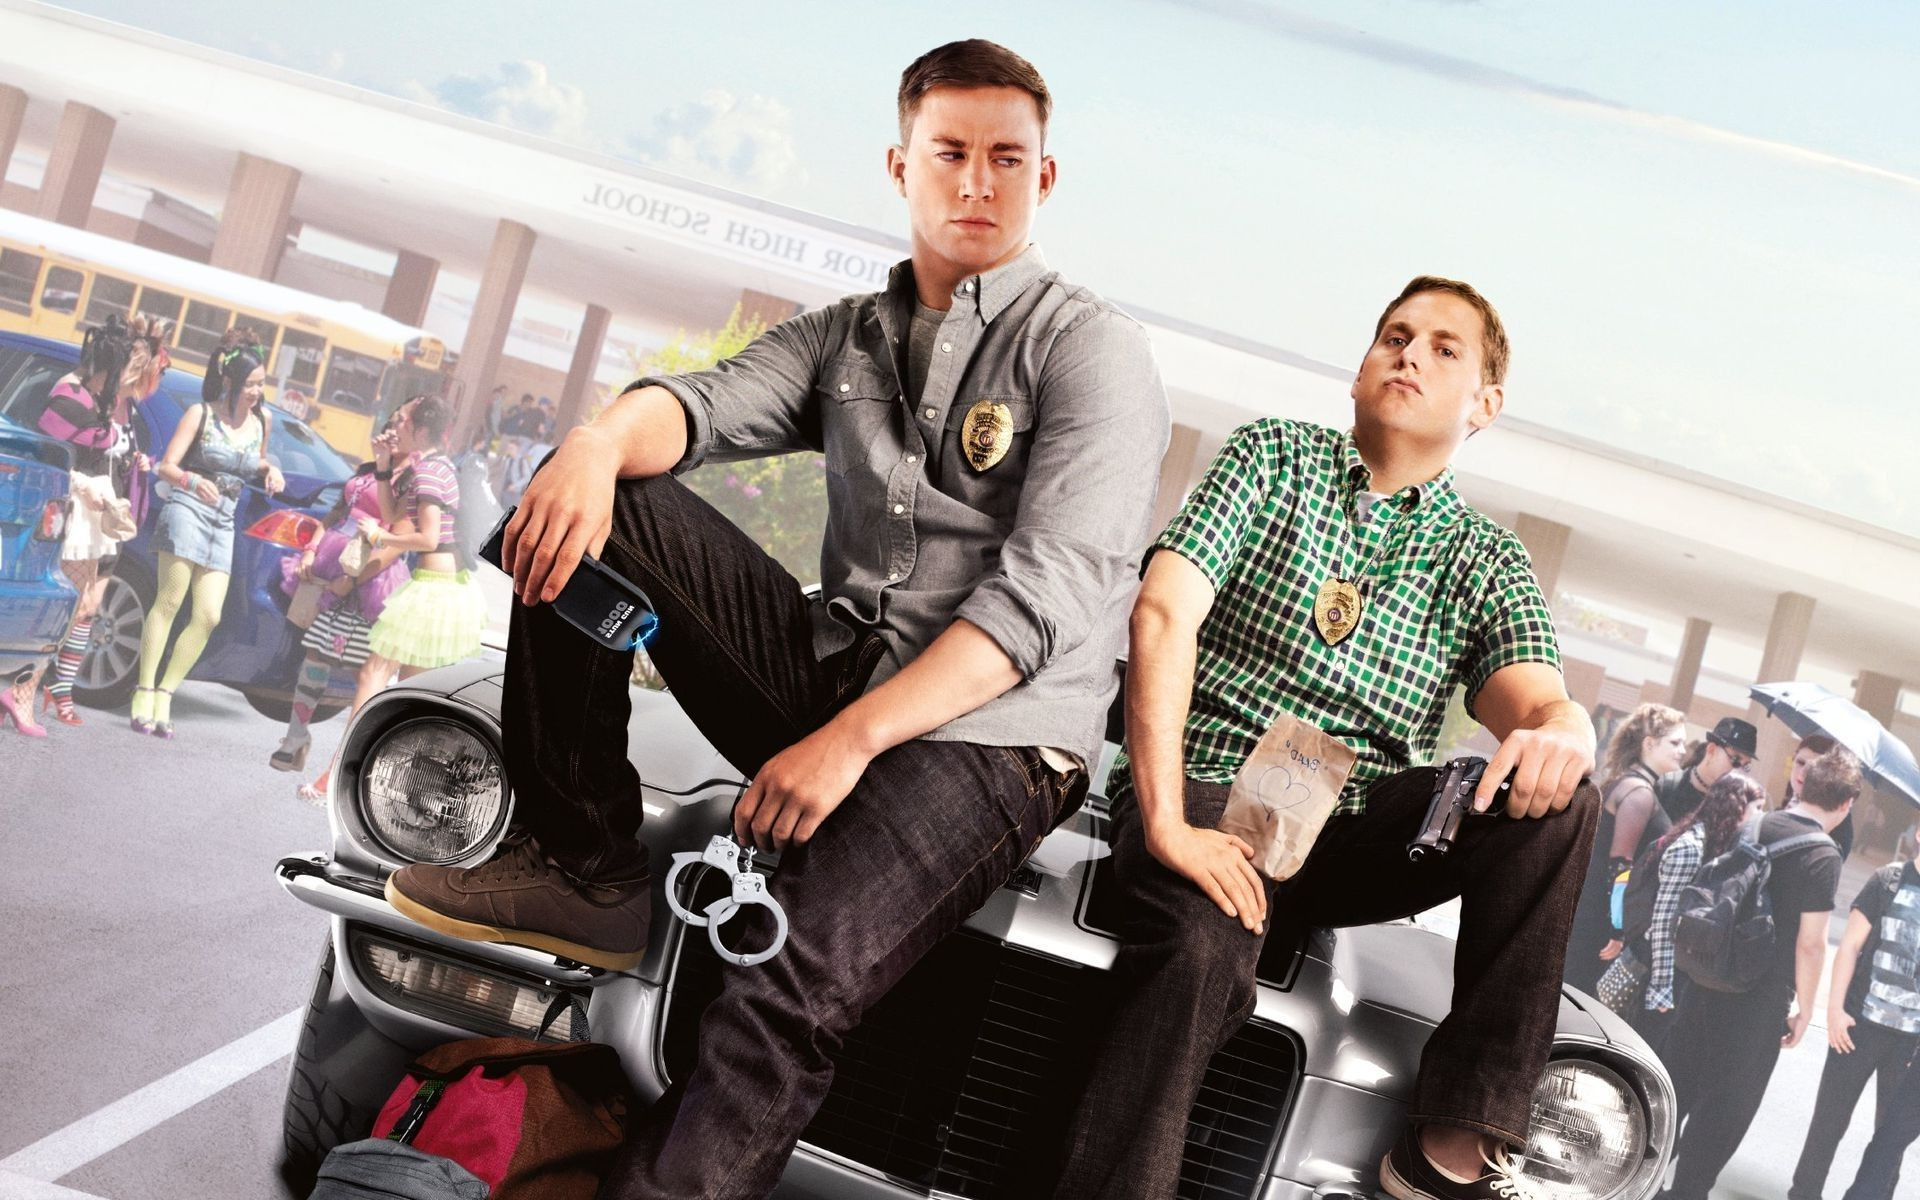 Movies 22 Jump Street Wallpapers Hd Desktop And Mobile Backgrounds